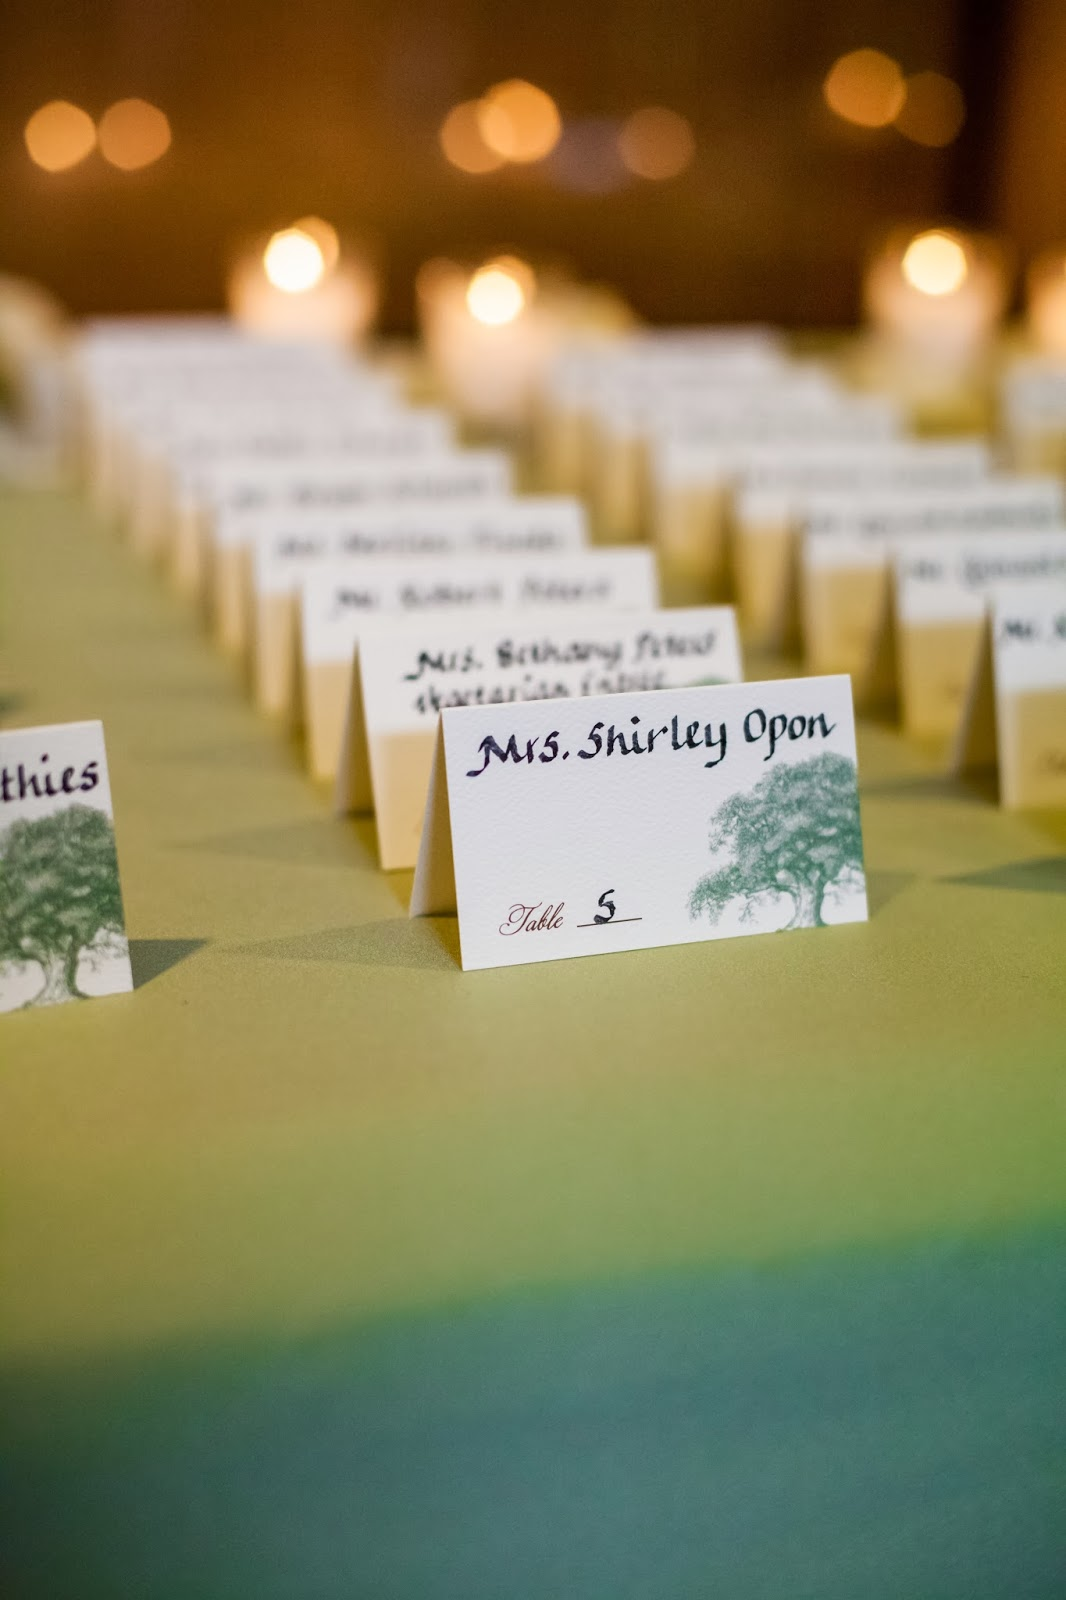 Place cards in ecru oak tree design.